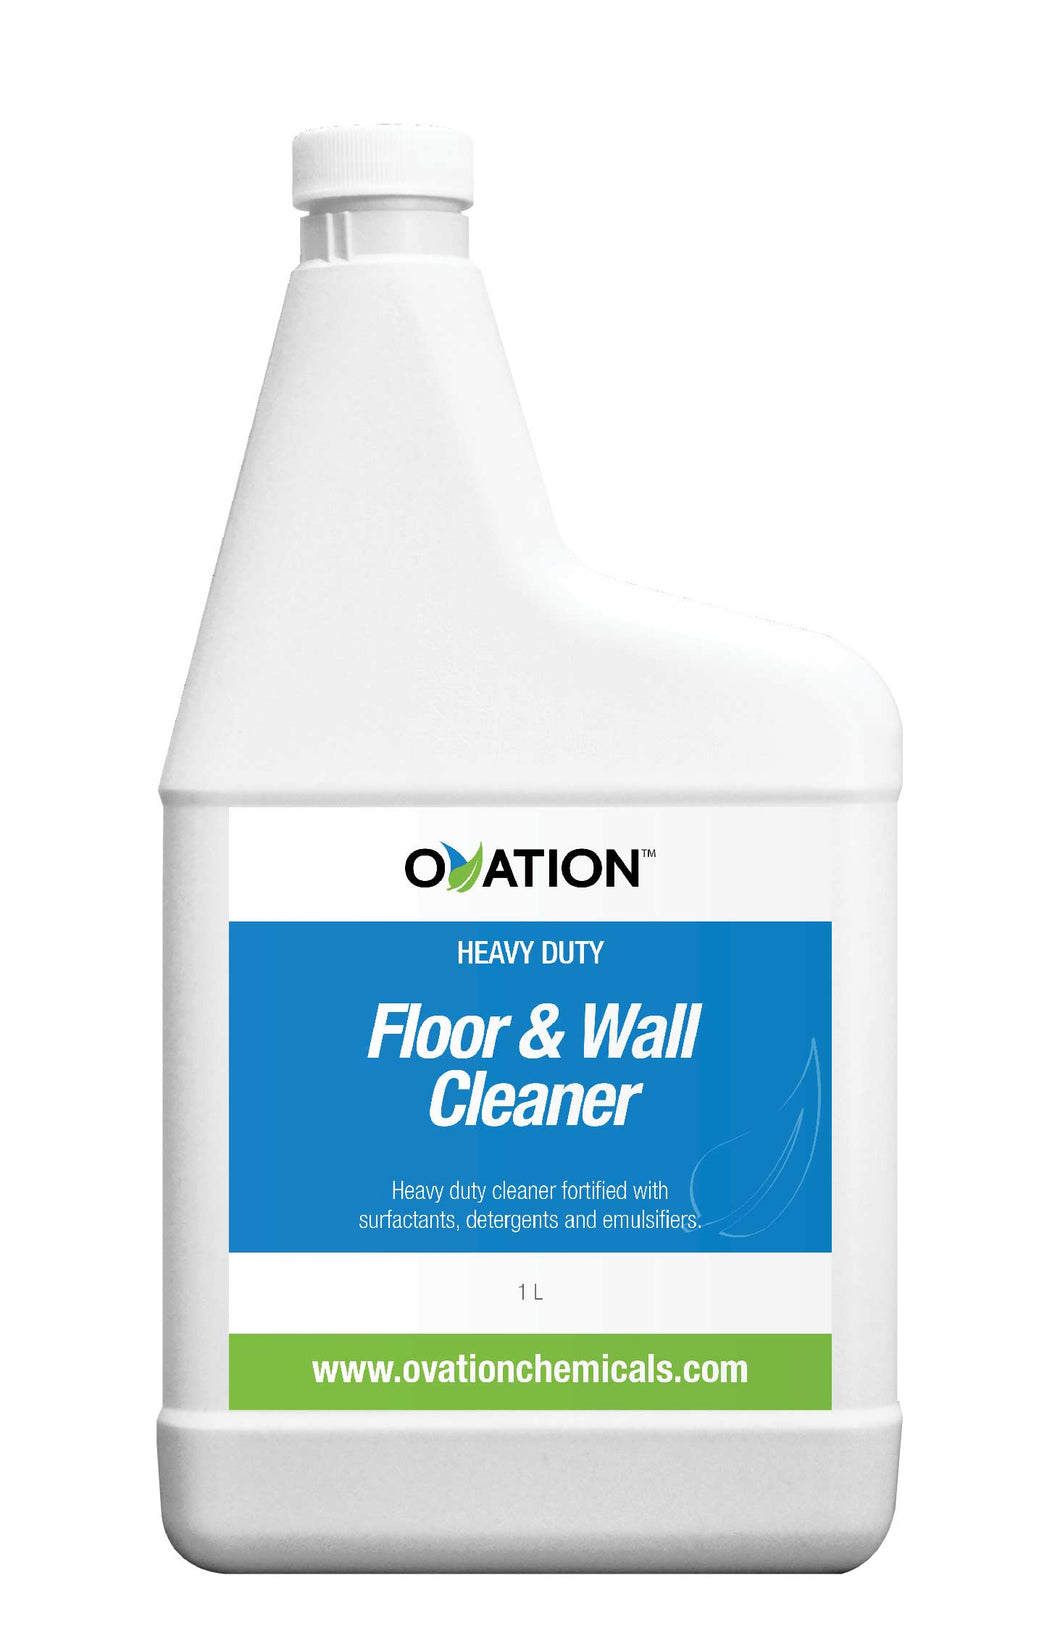 Ovation Heavy Duty Floor and Wall Cleaner (32oz / 1L) by Katan Technologies